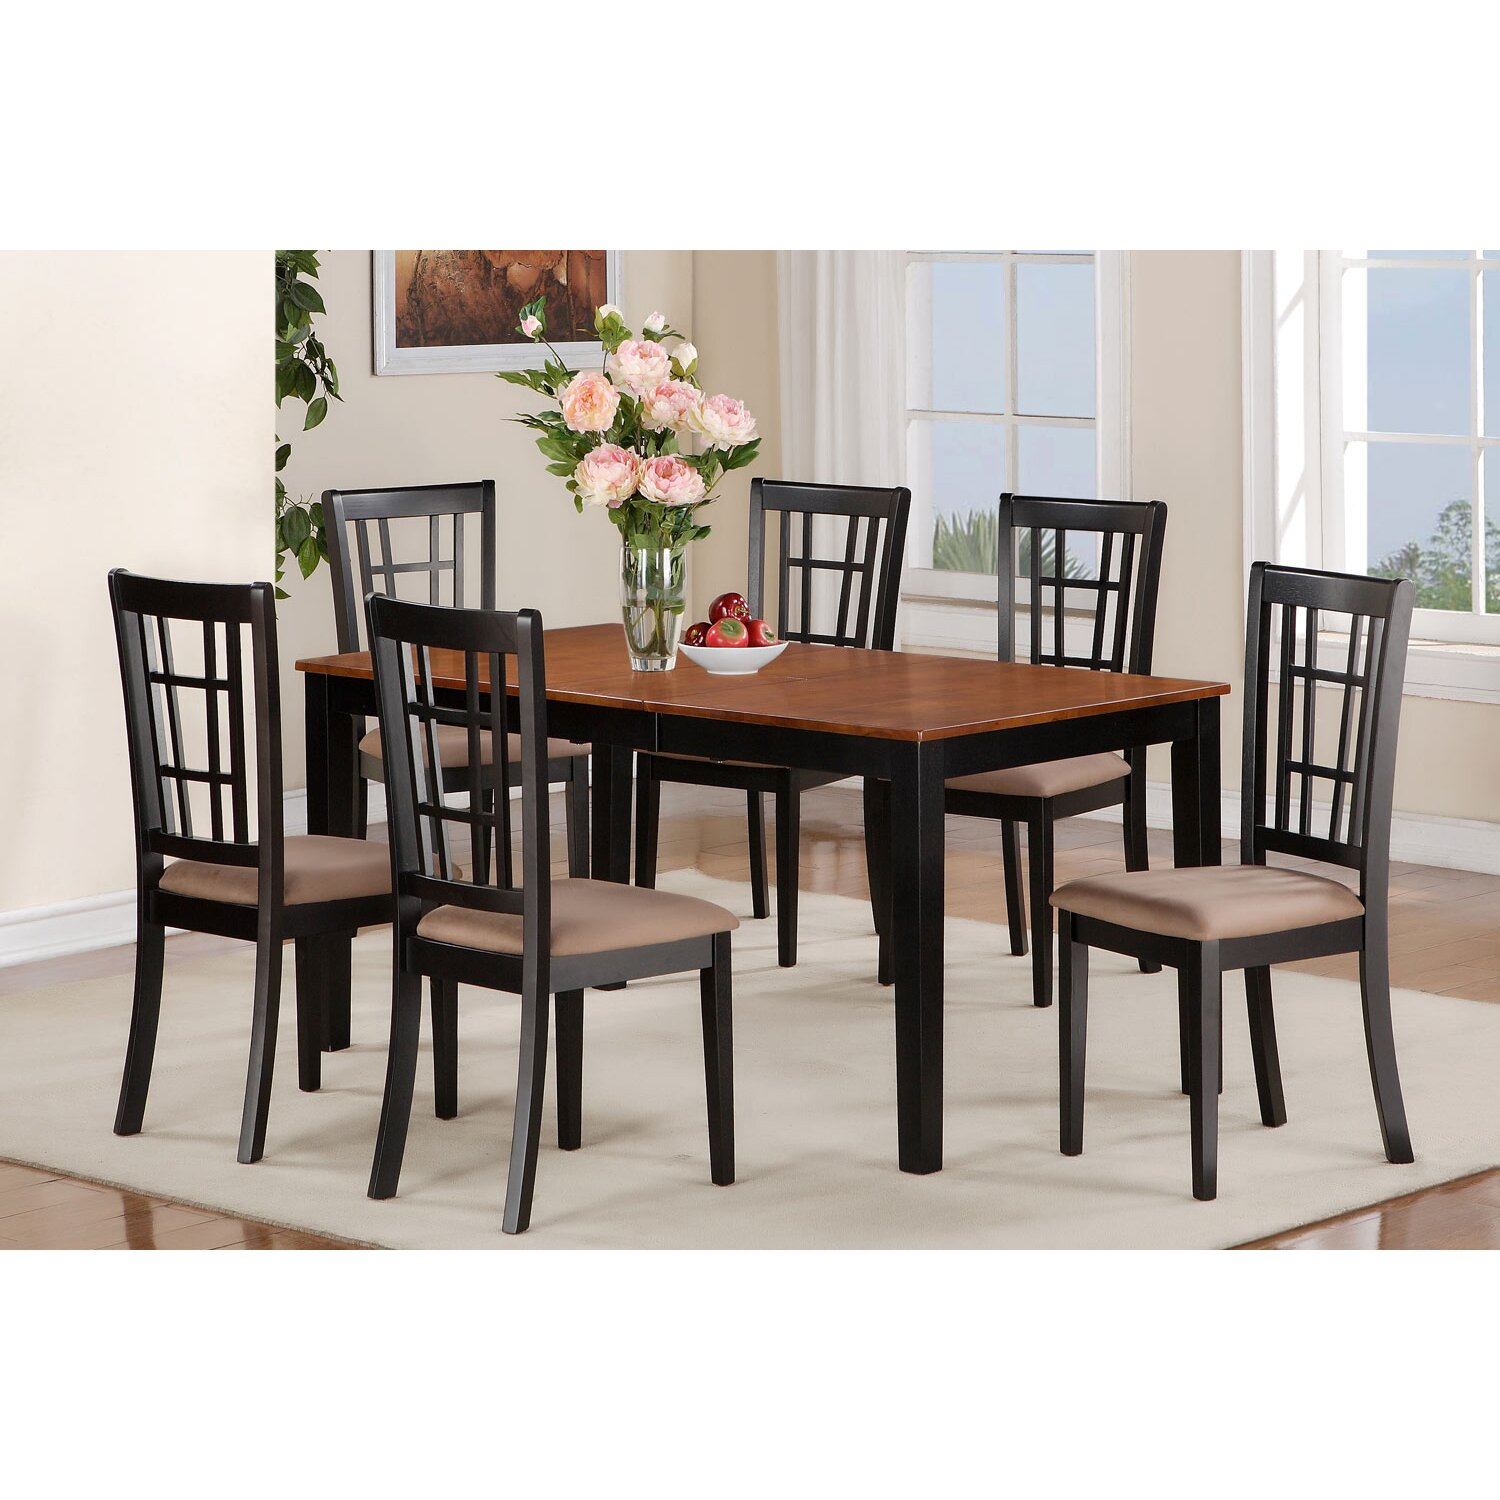 East west nicoli 7 piece dining set reviews wayfair for Dinette sets